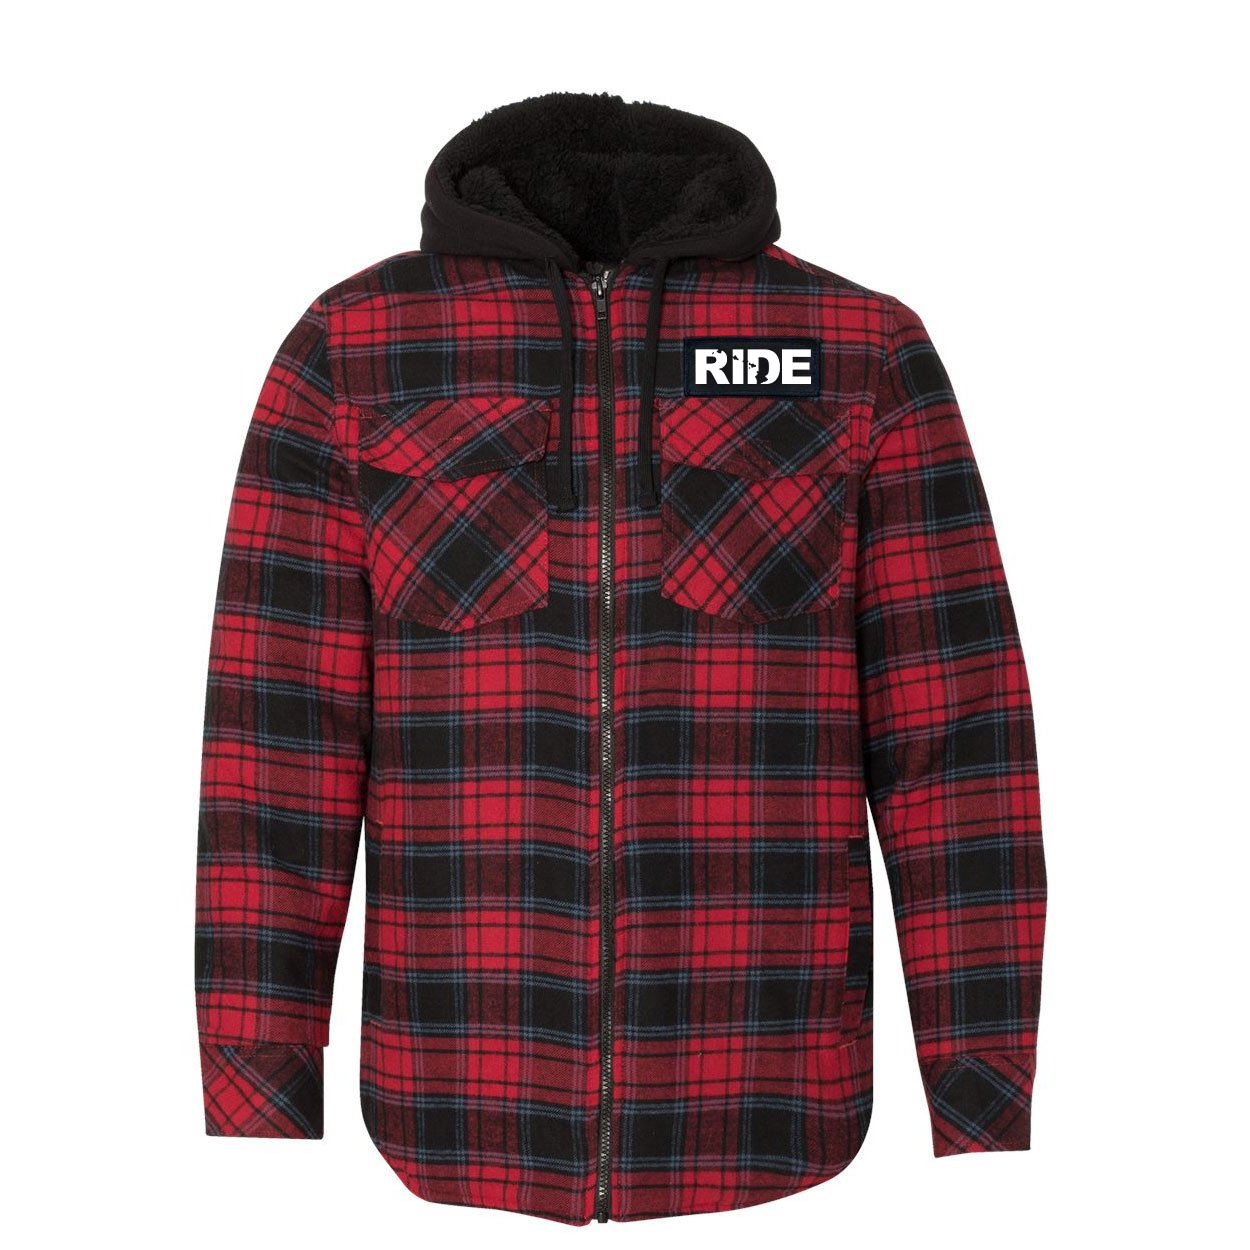 Ride Hawaii Classic Unisex Full Zip Woven Patch Hooded Flannel Jacket Red/Black Buffalo (White Logo)